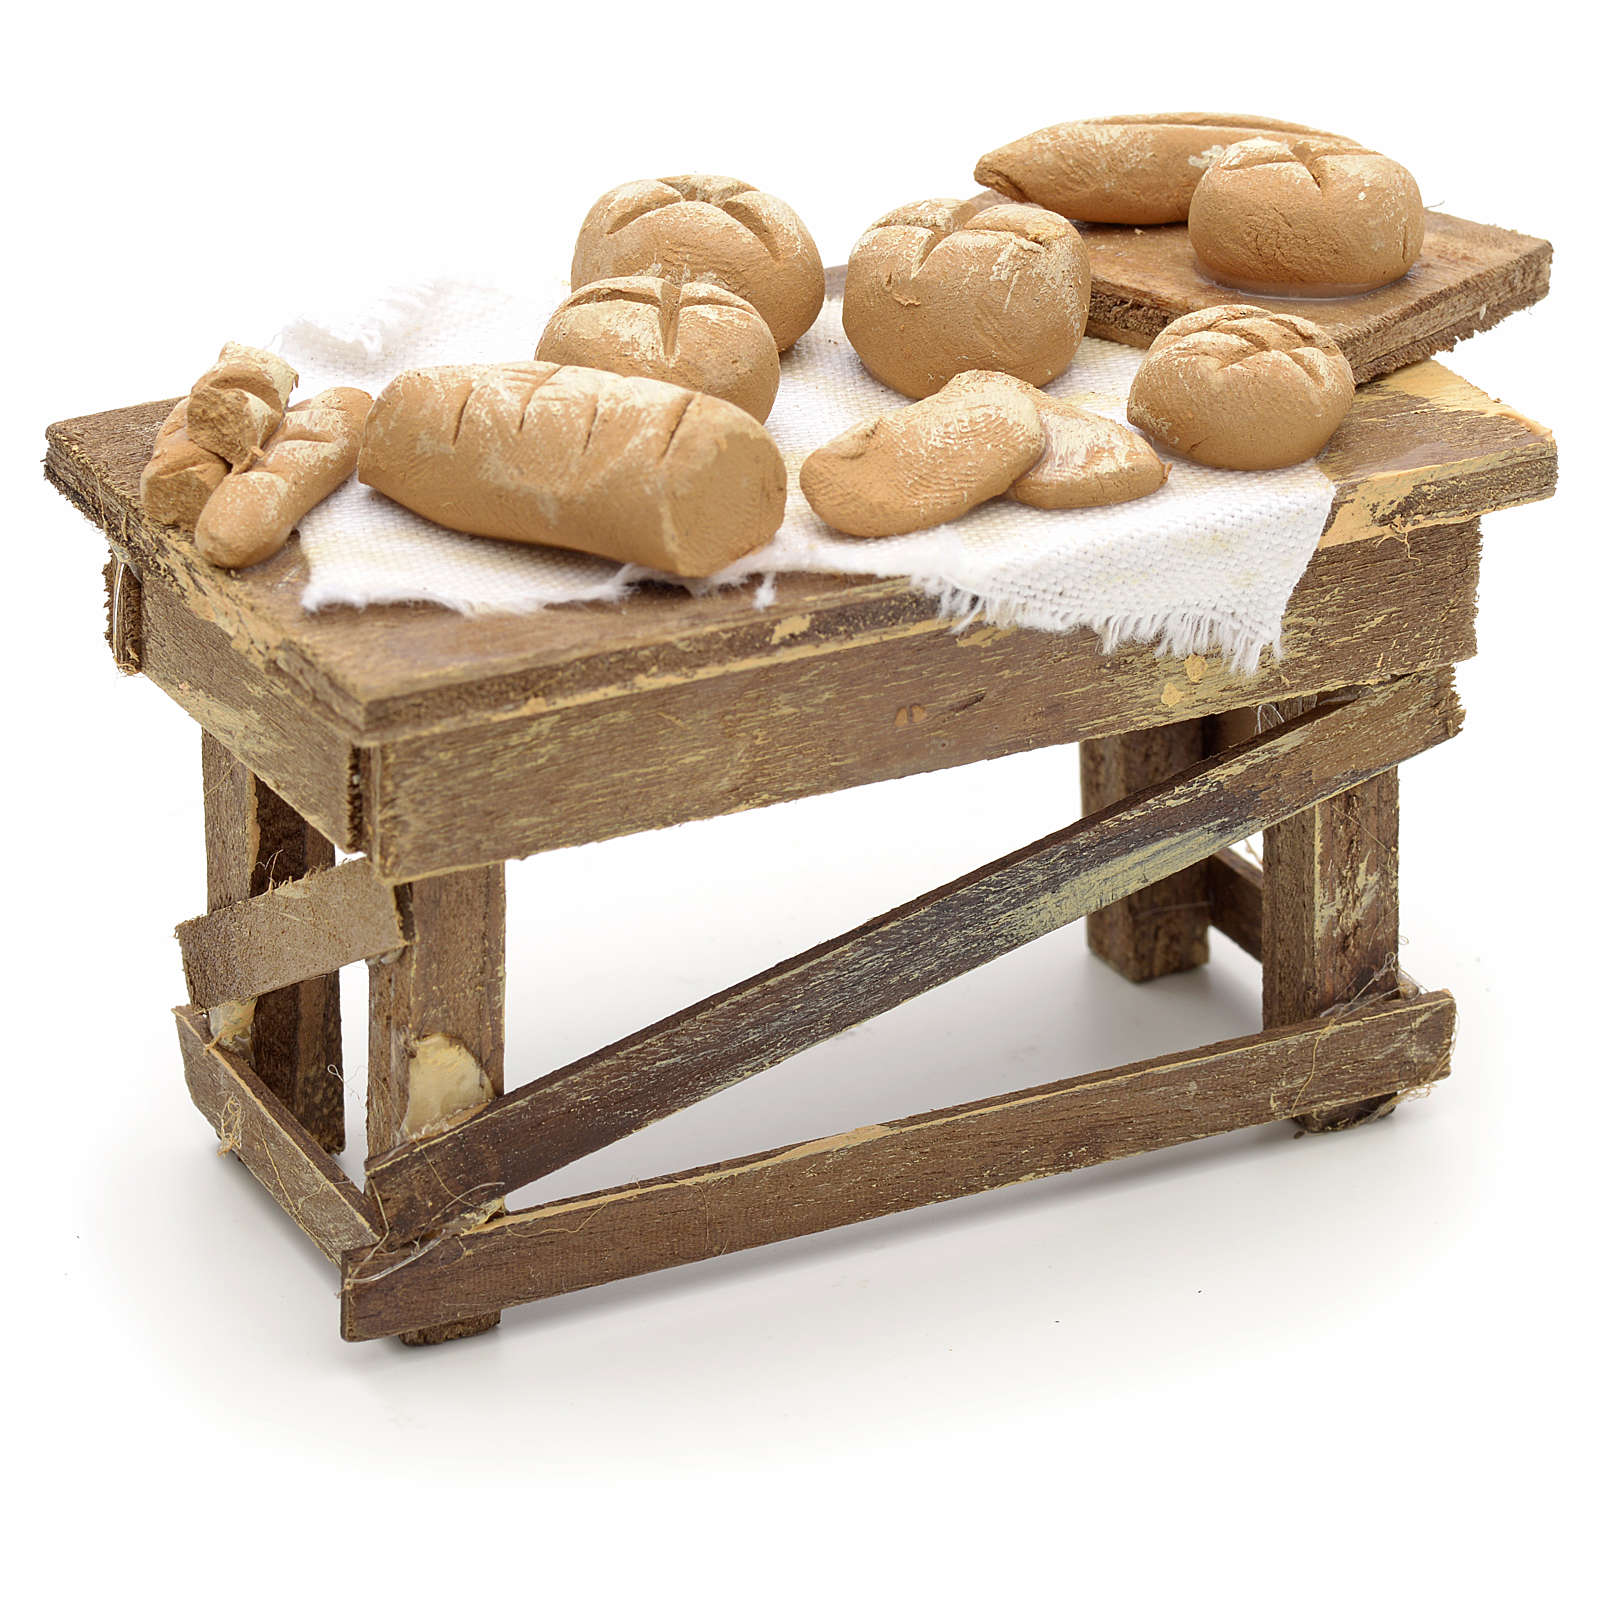 Neapolitan Nativity scene accessory, bread stall 4